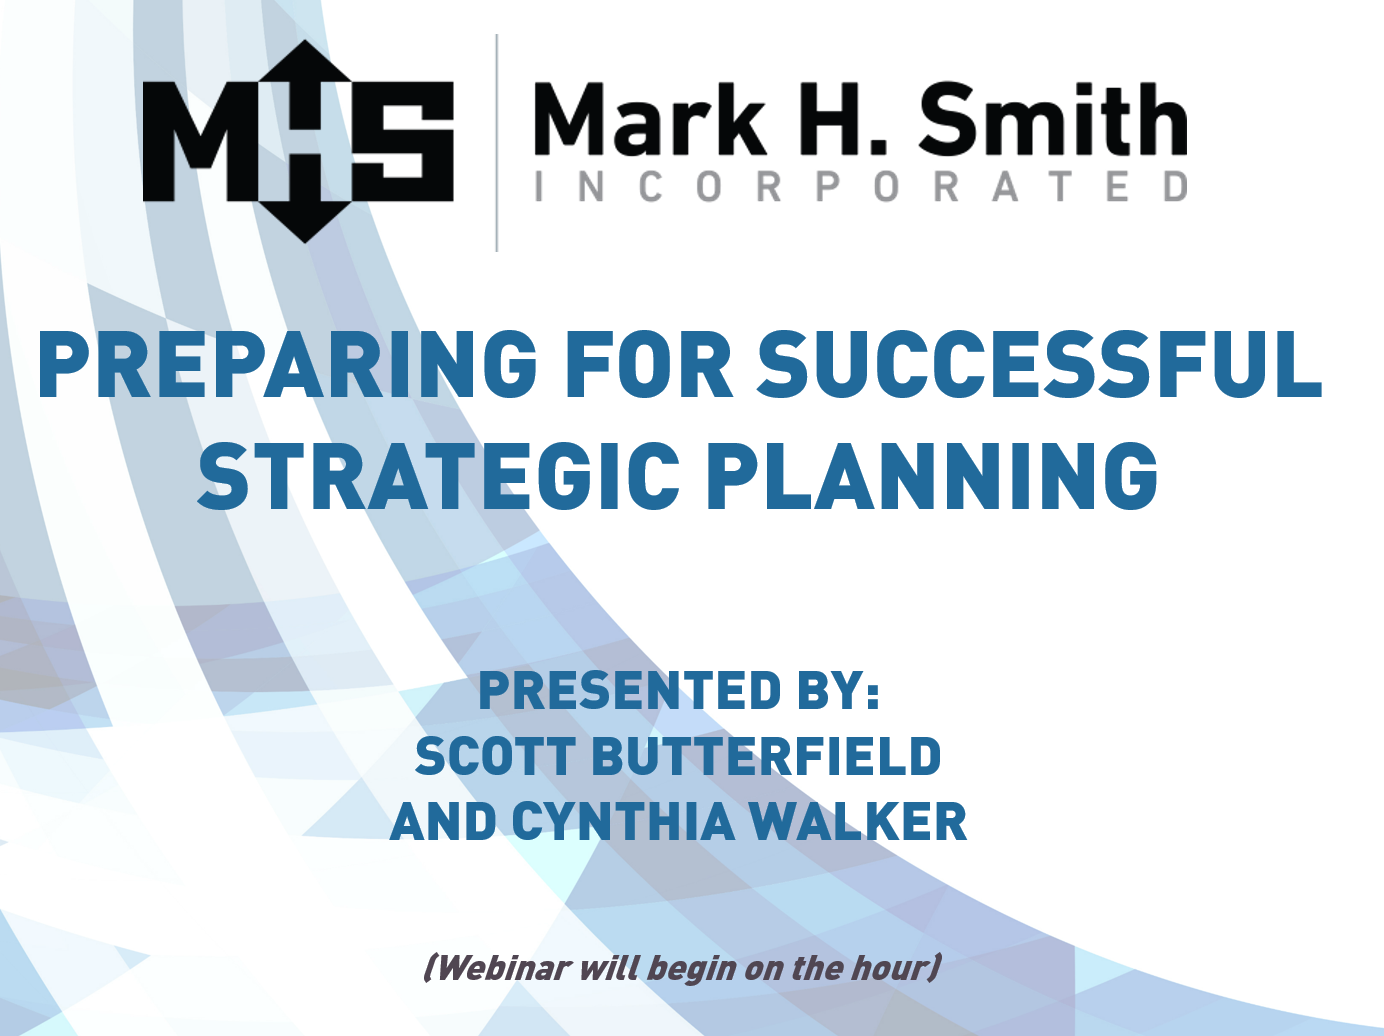 Preparing for Successful Strategic Planning